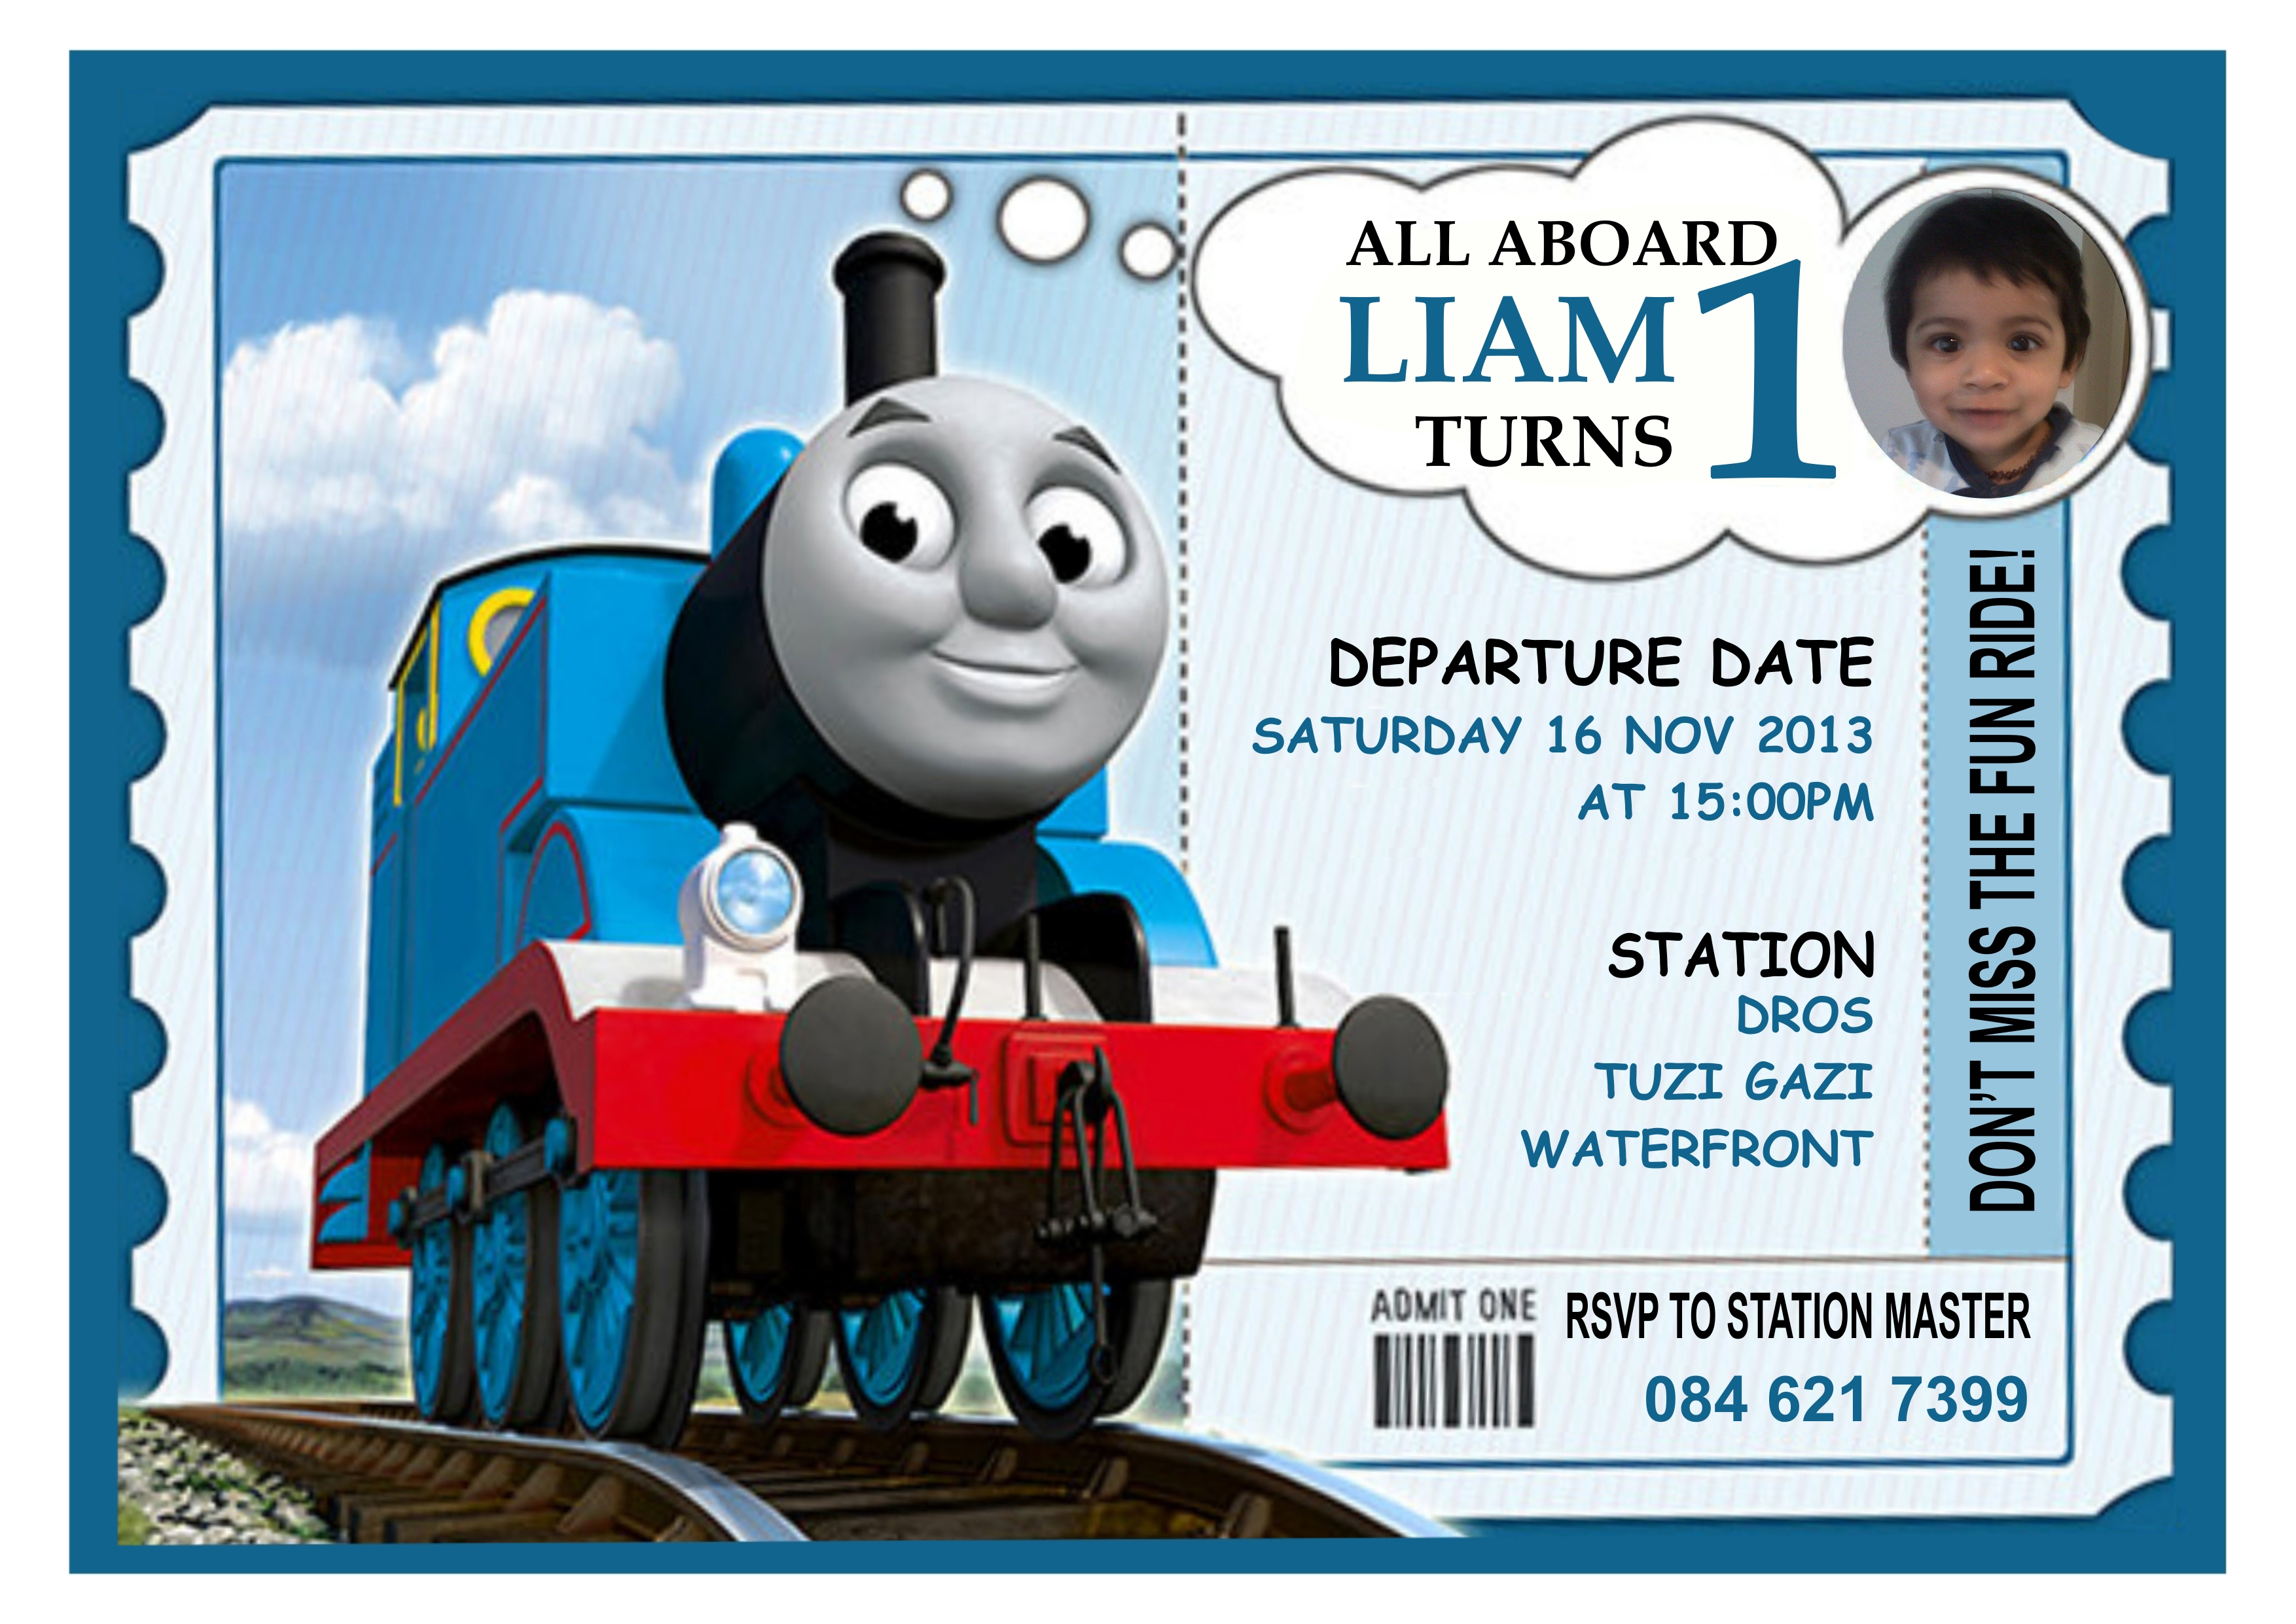 thomas and friends birthday invitation templates ; thomas-the-train-birthday-invitations-including-stunning-Birthday-Invitation-Templates-with-full-of-pleasure-environment-2